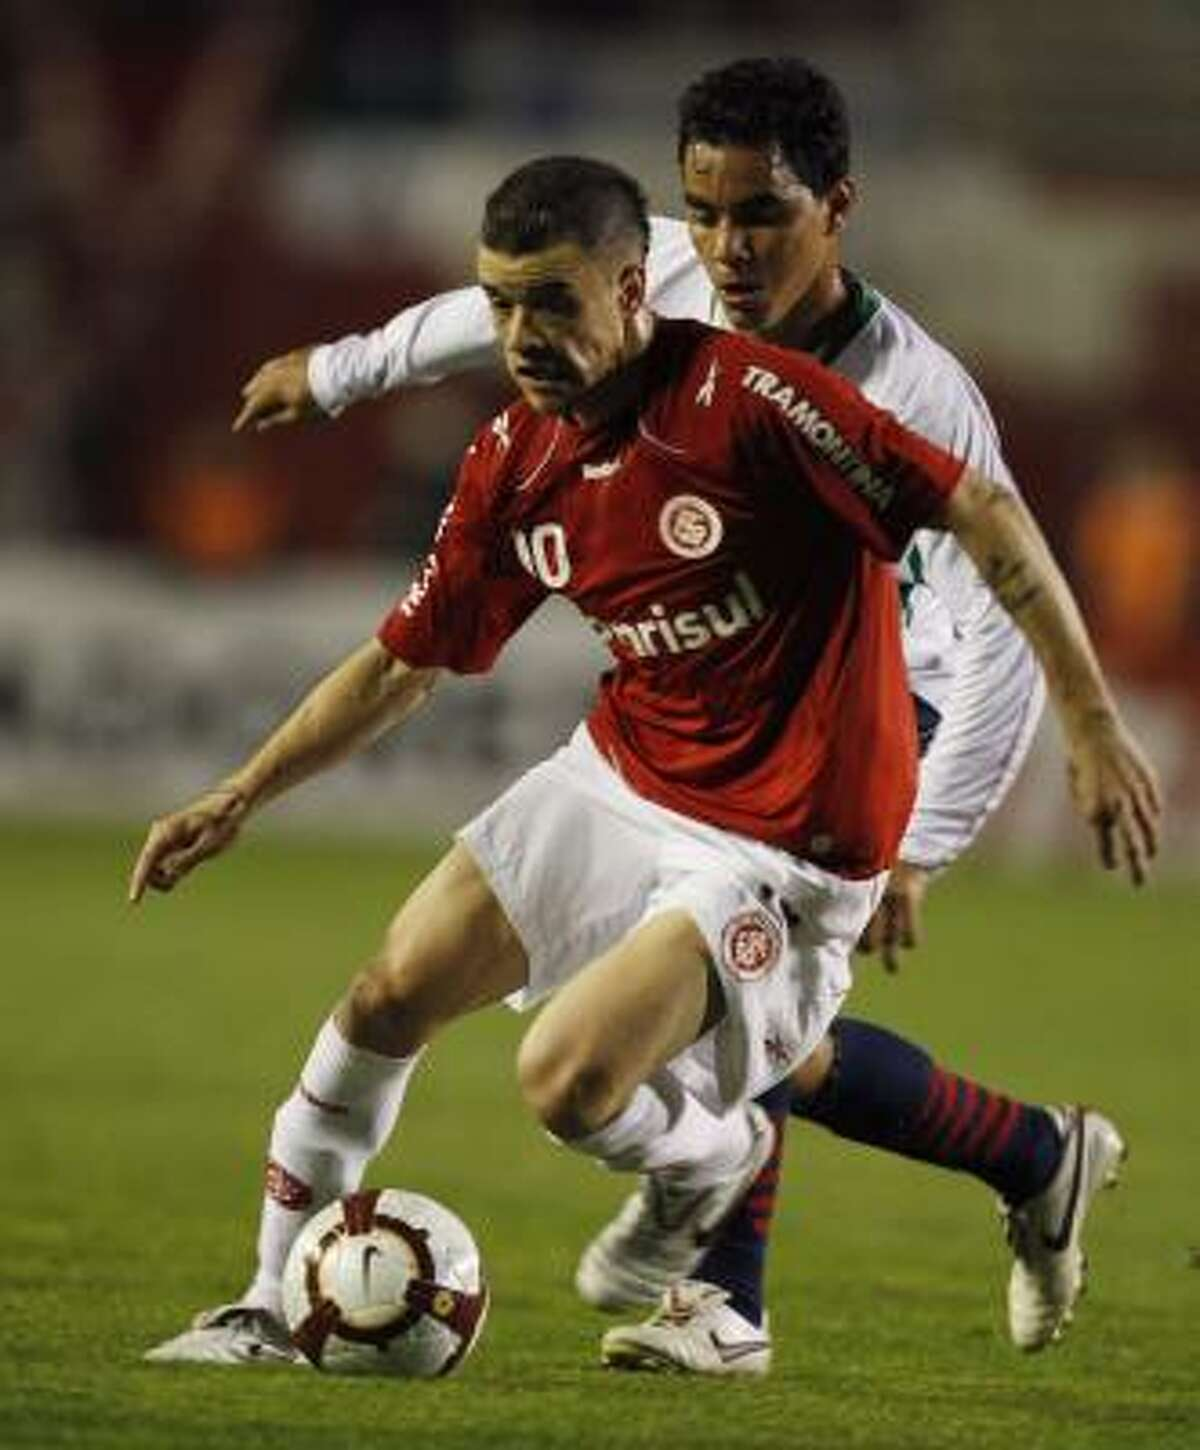 Followed by Mexico's Chivas' Omar Bravo, Brazil's SC Internacional's Andres D'Alessandro, front, plays the ball during the Copa Libertadores final soccer match in Porto Alegre, Brazil, Wednesday, Aug. 18, 2010.